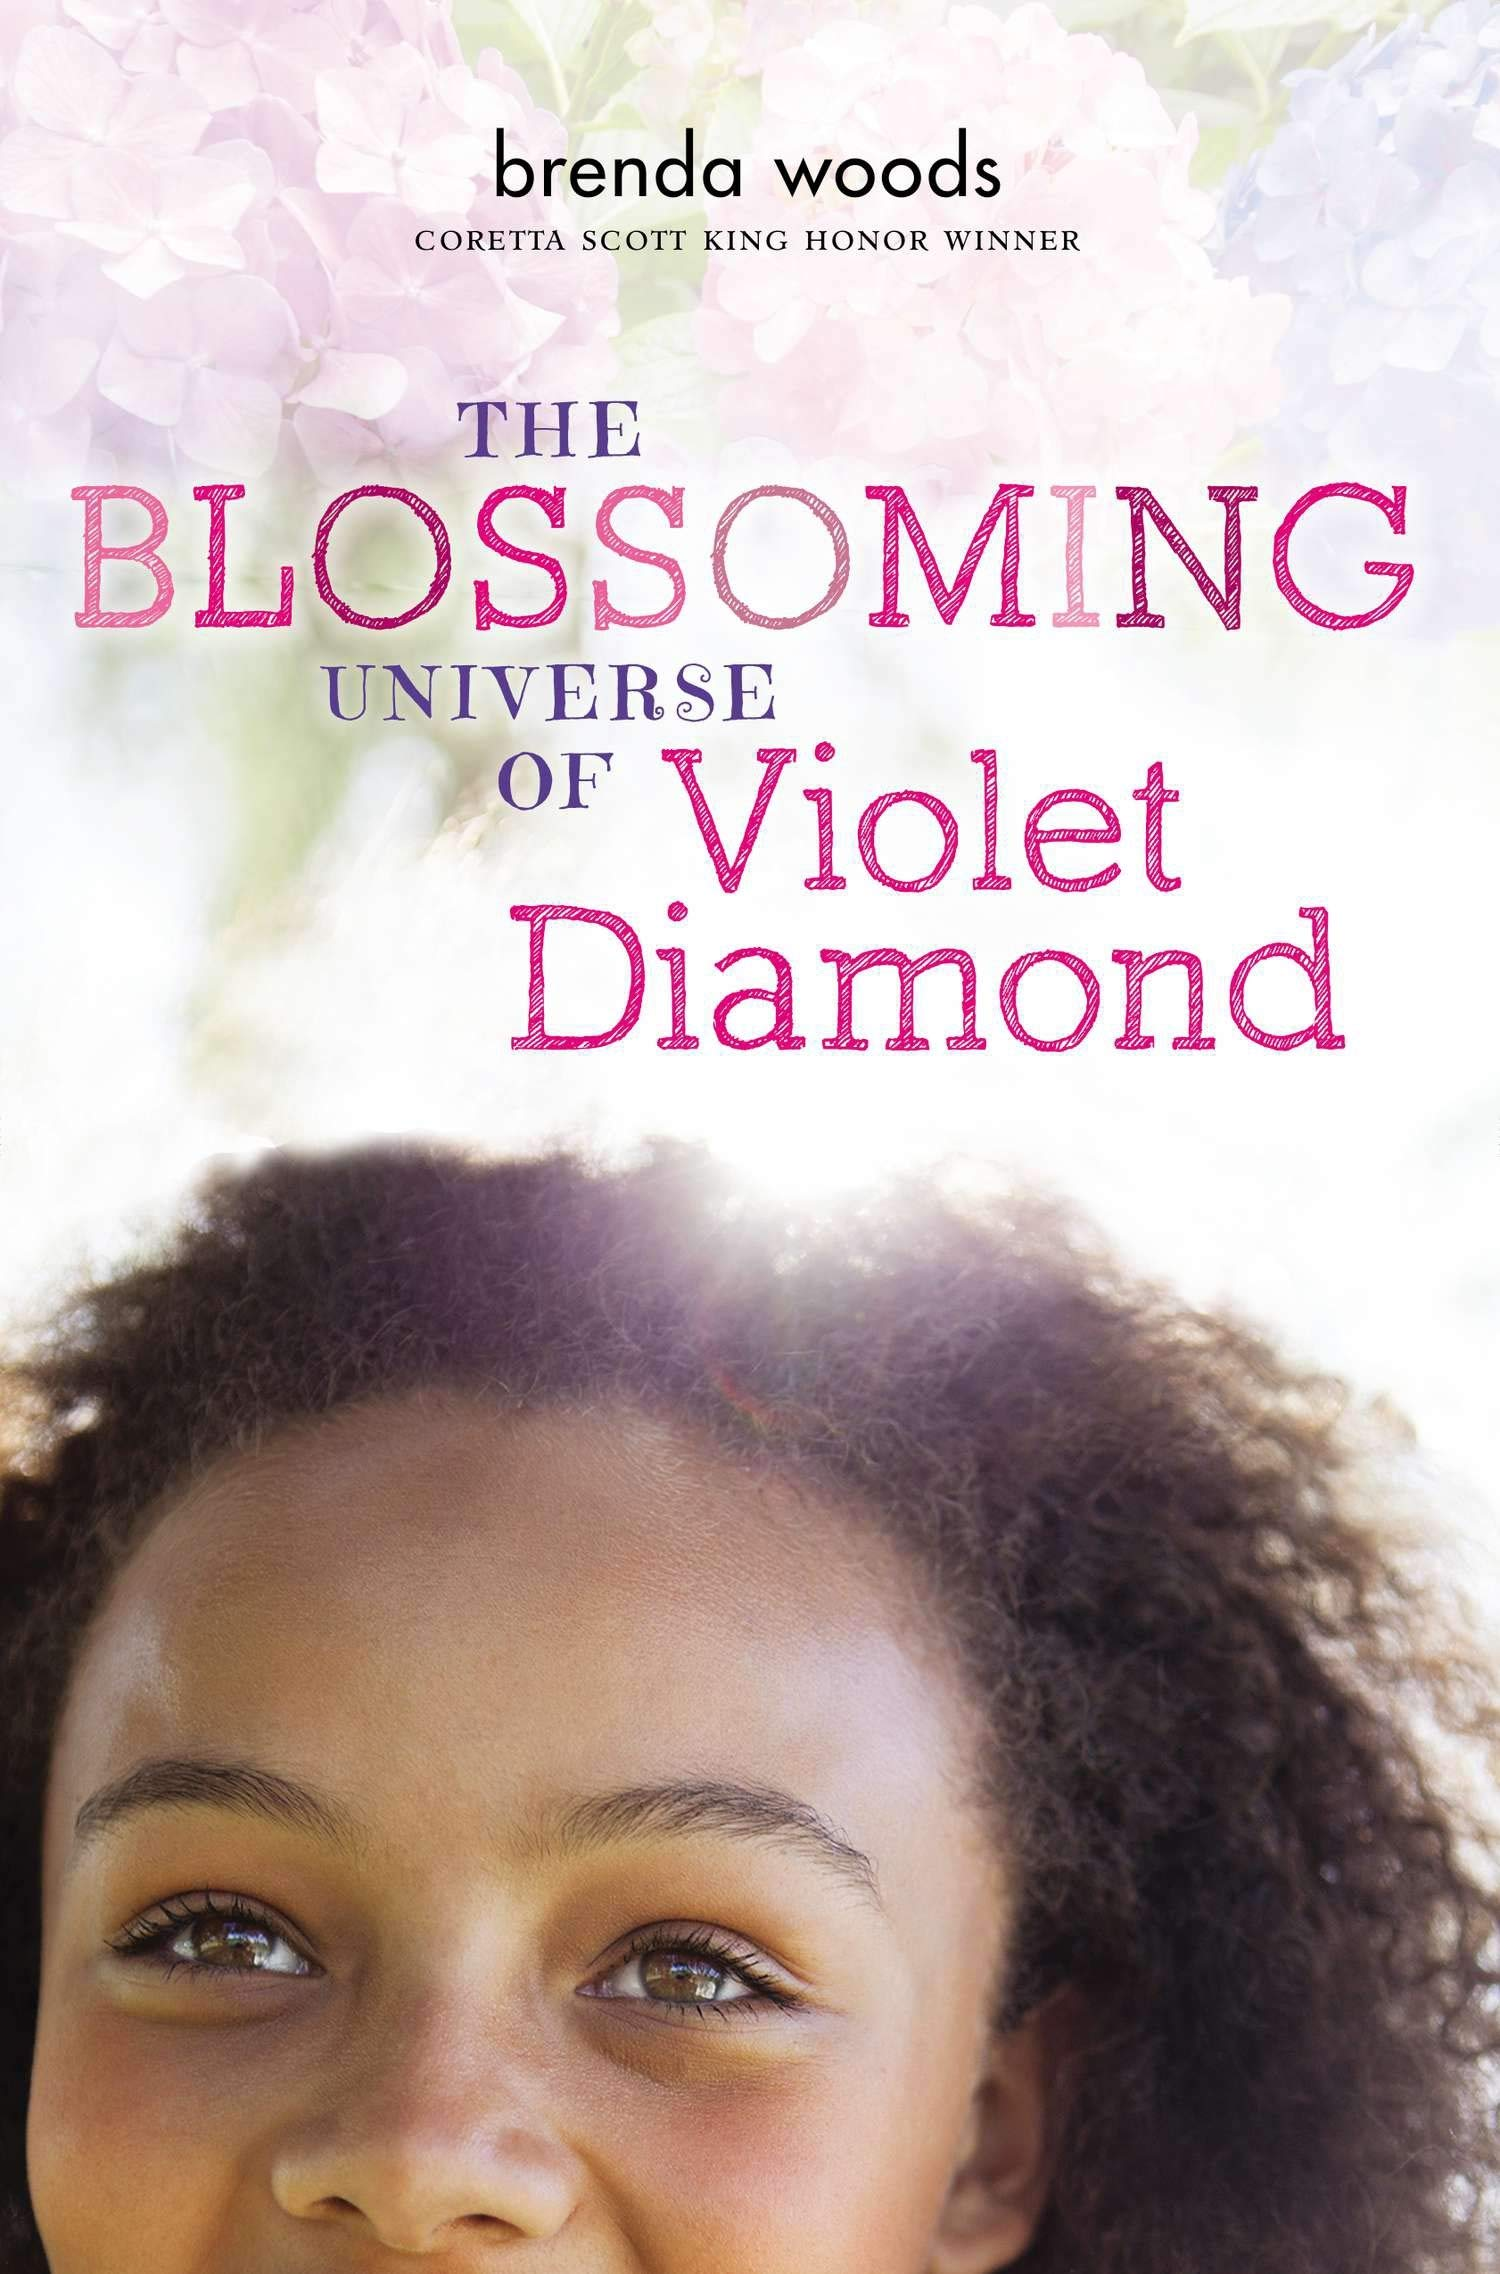 blossoming universe of violet